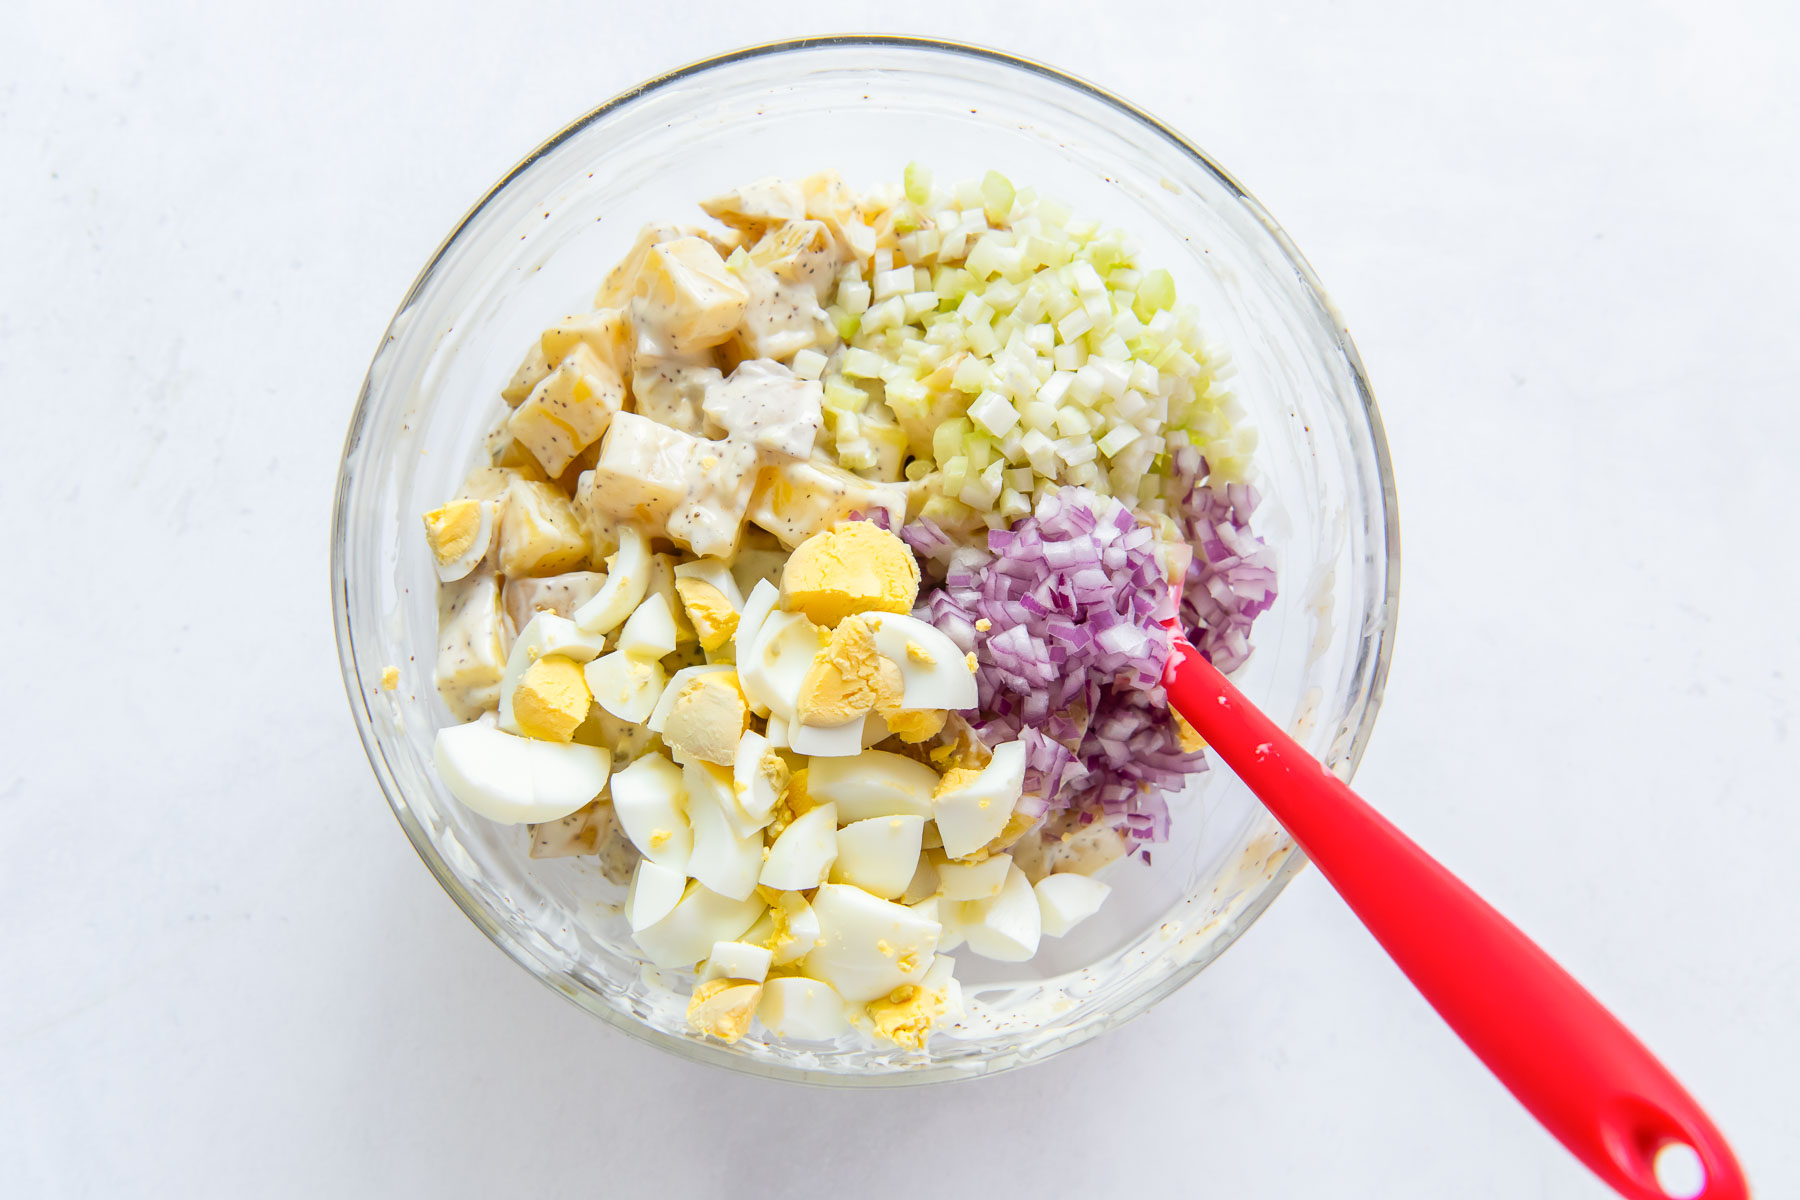 stirring hard boiled eggs, celery and red onion into salad